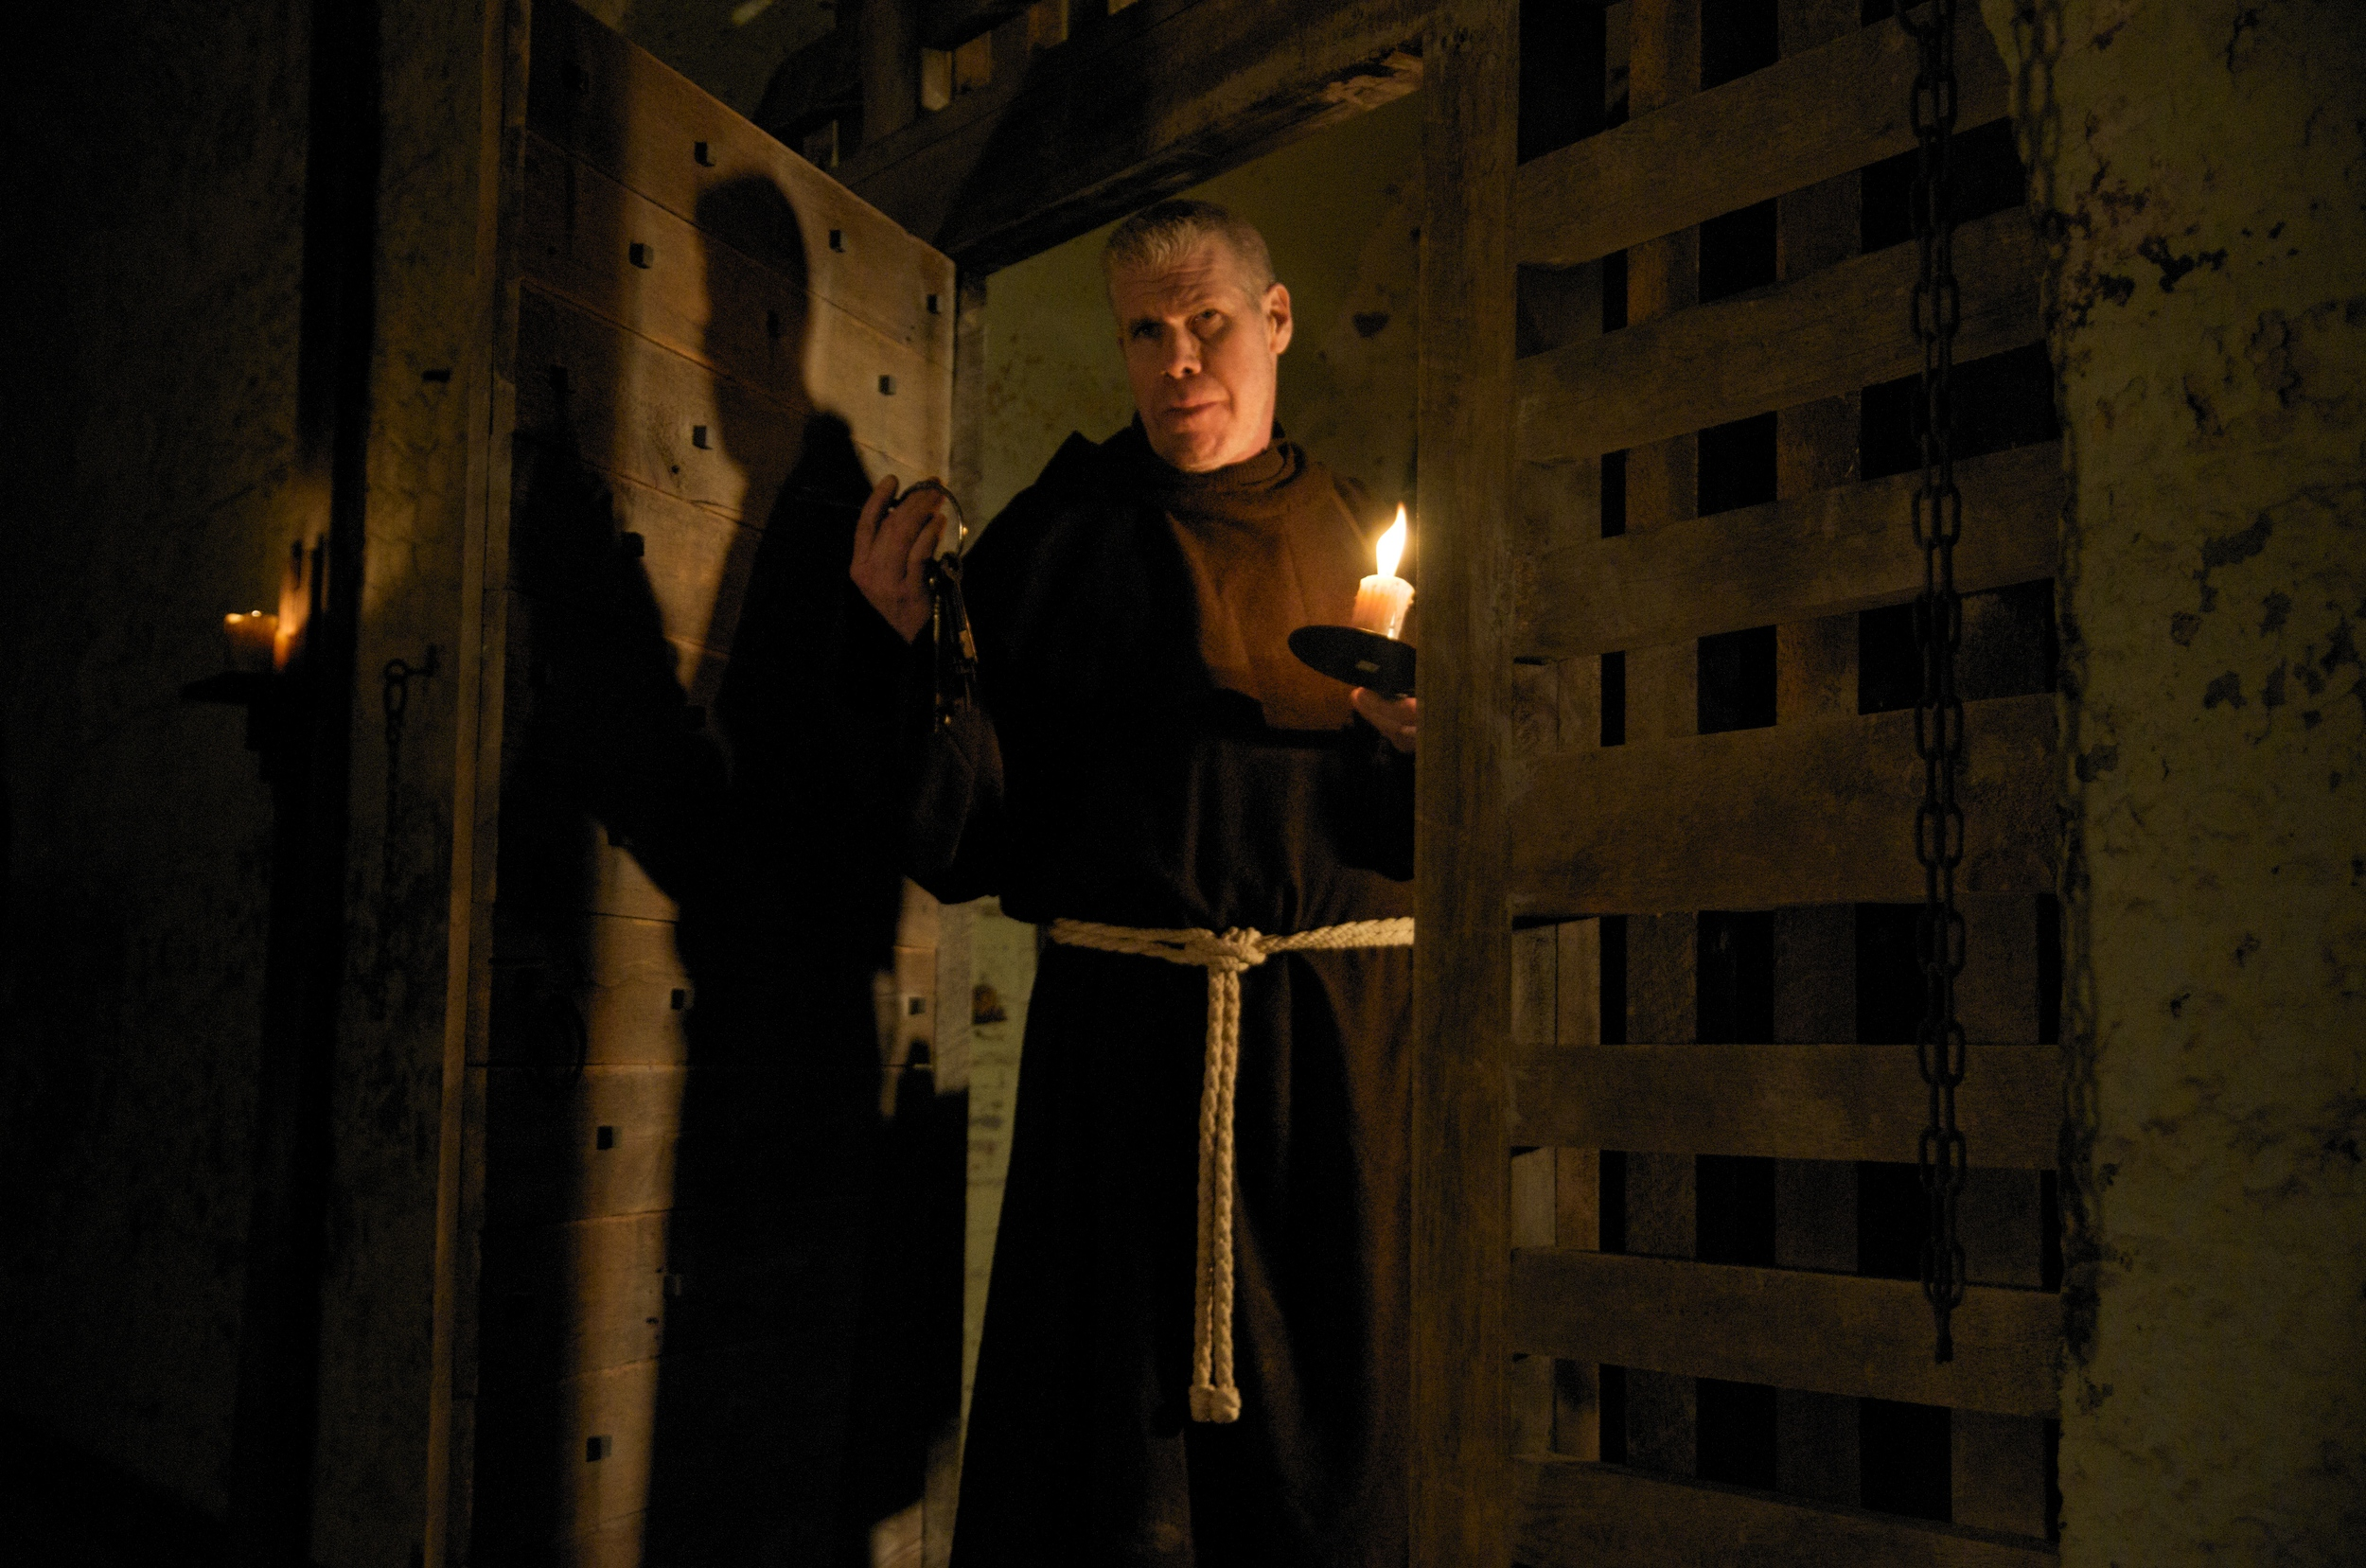 Father Duffy in the Holding Cell